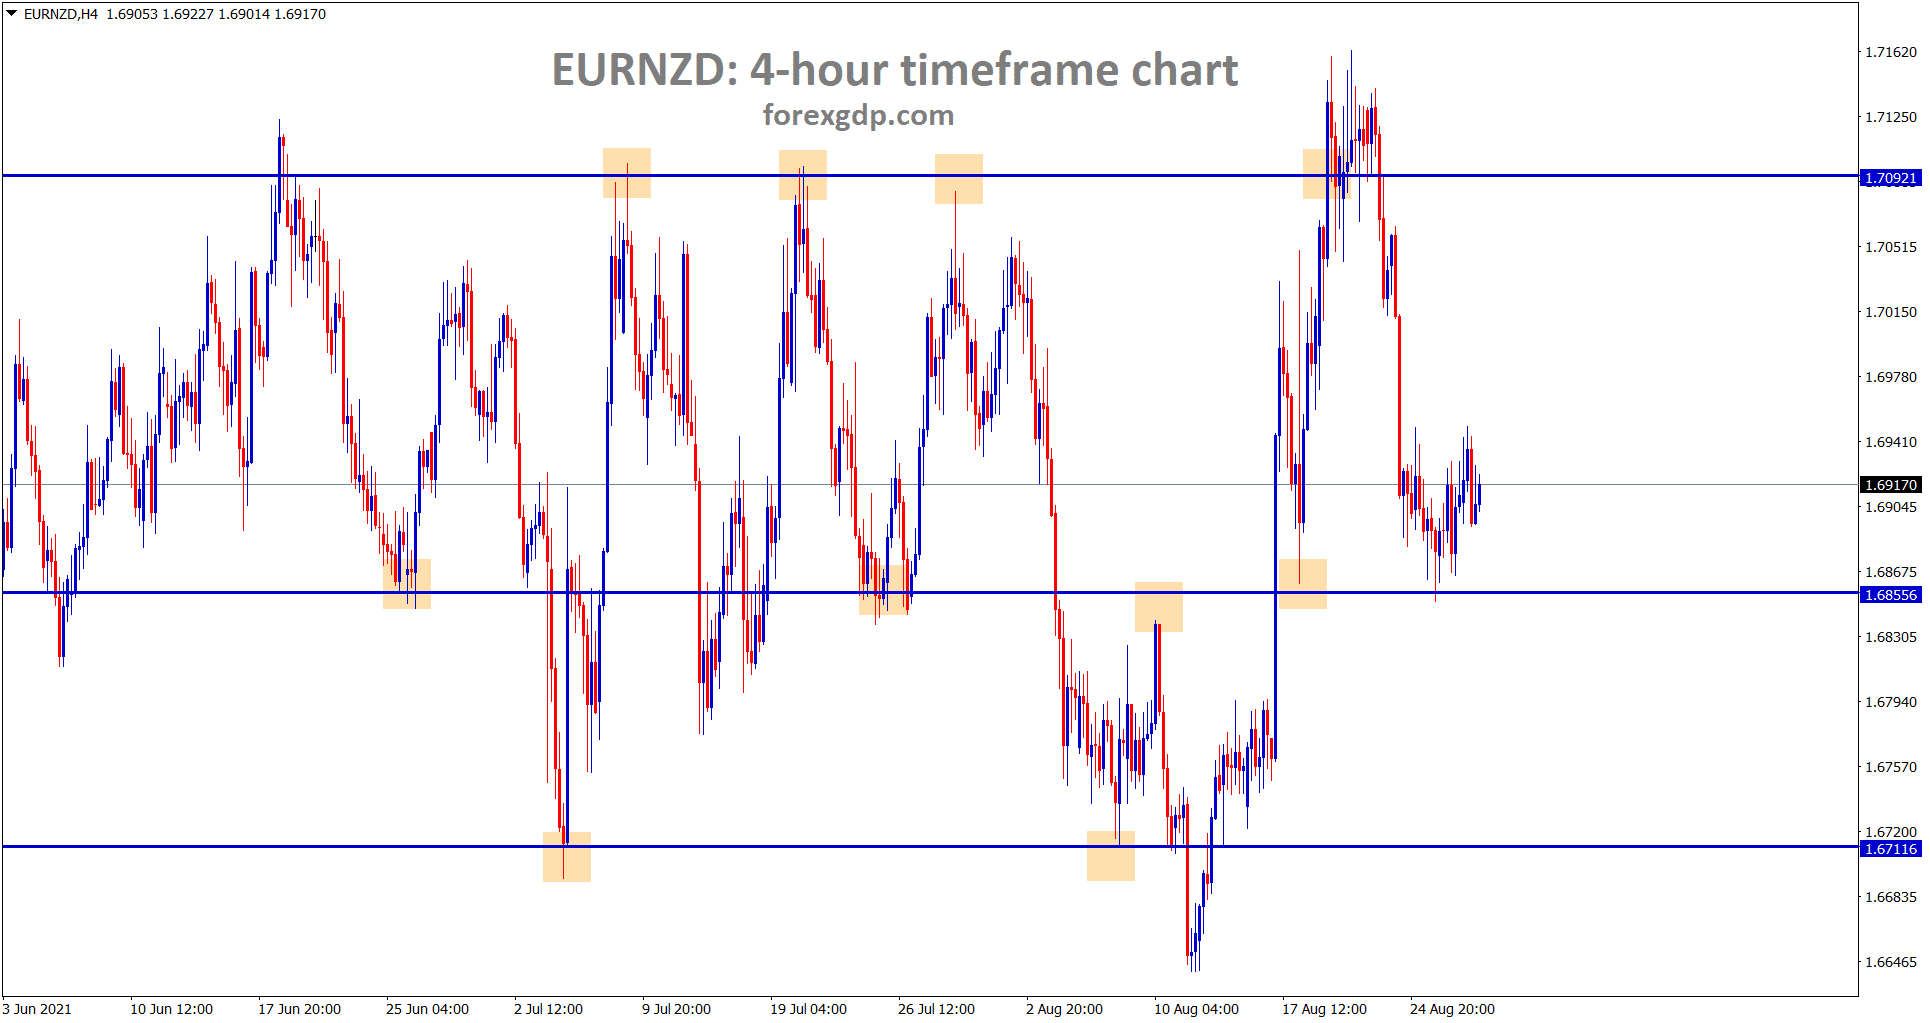 EURNZD rebound shortly from the minor support area